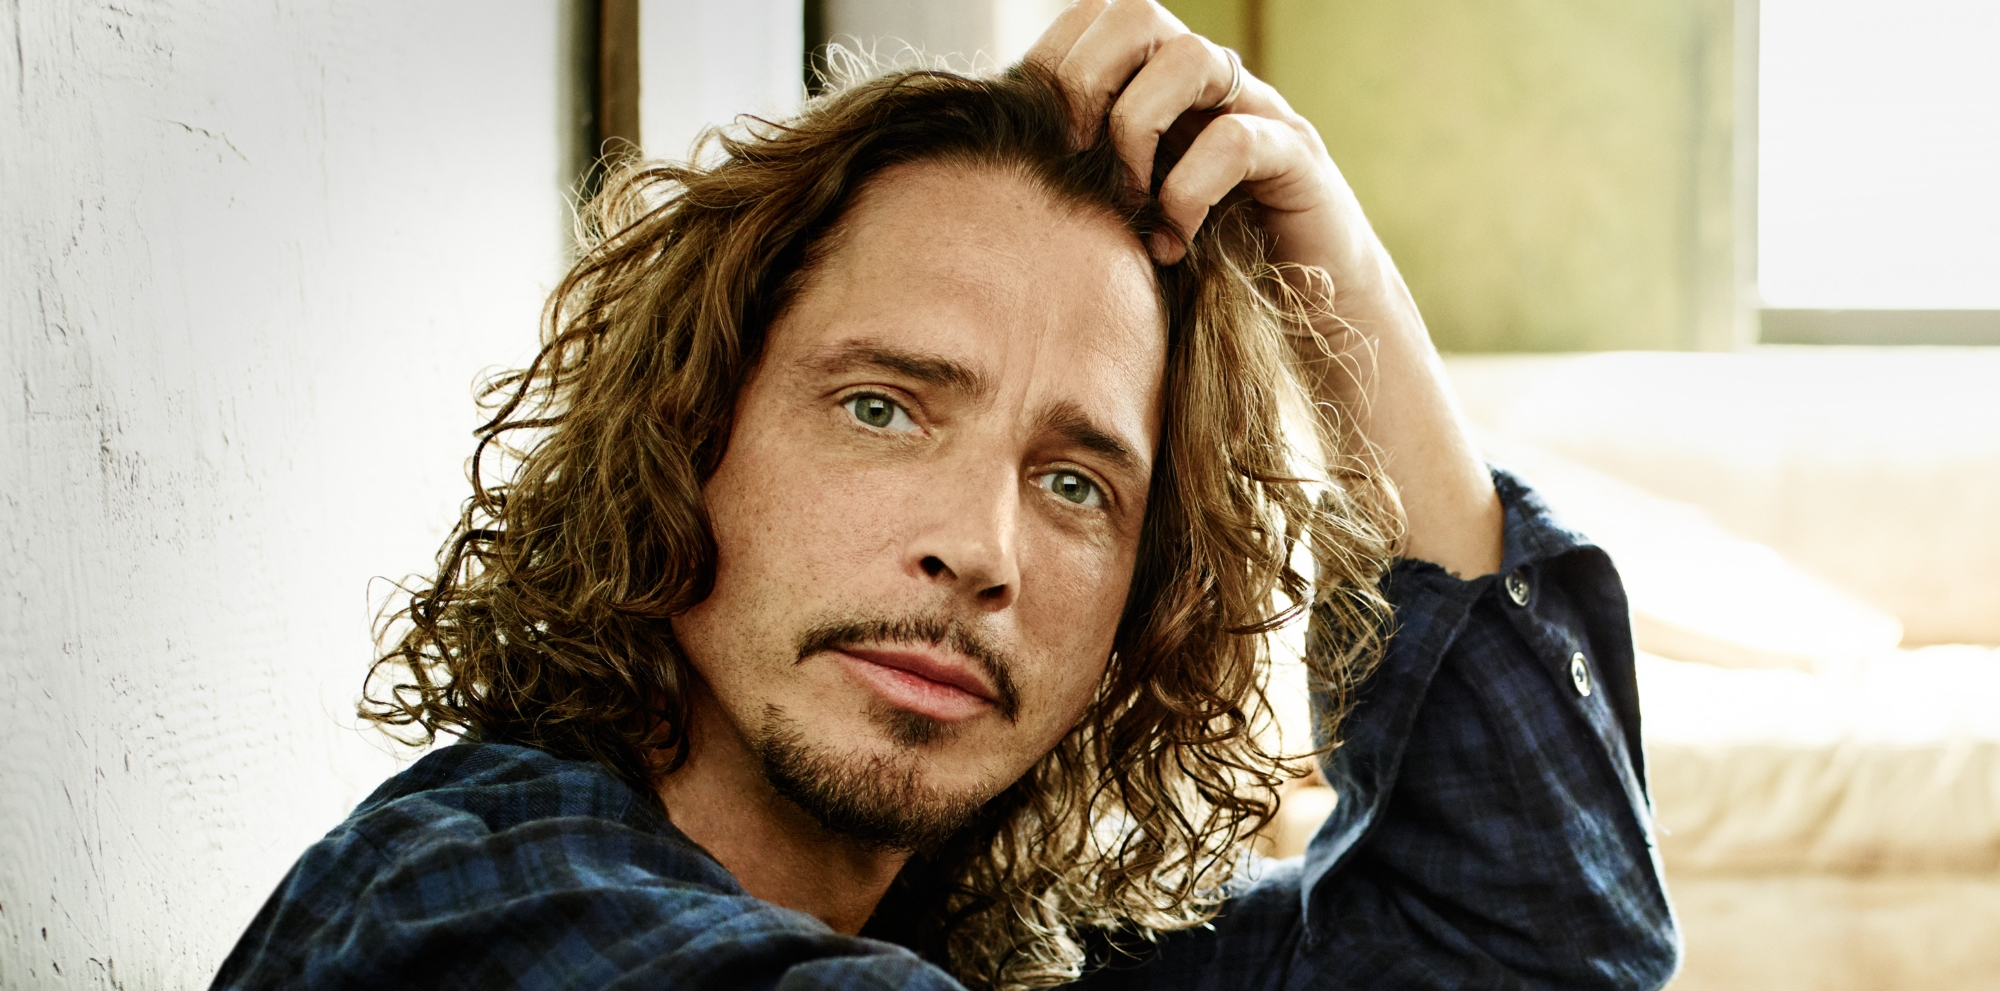 SE CONFIRMA SUICIDIO DE CHRIS CORNELL